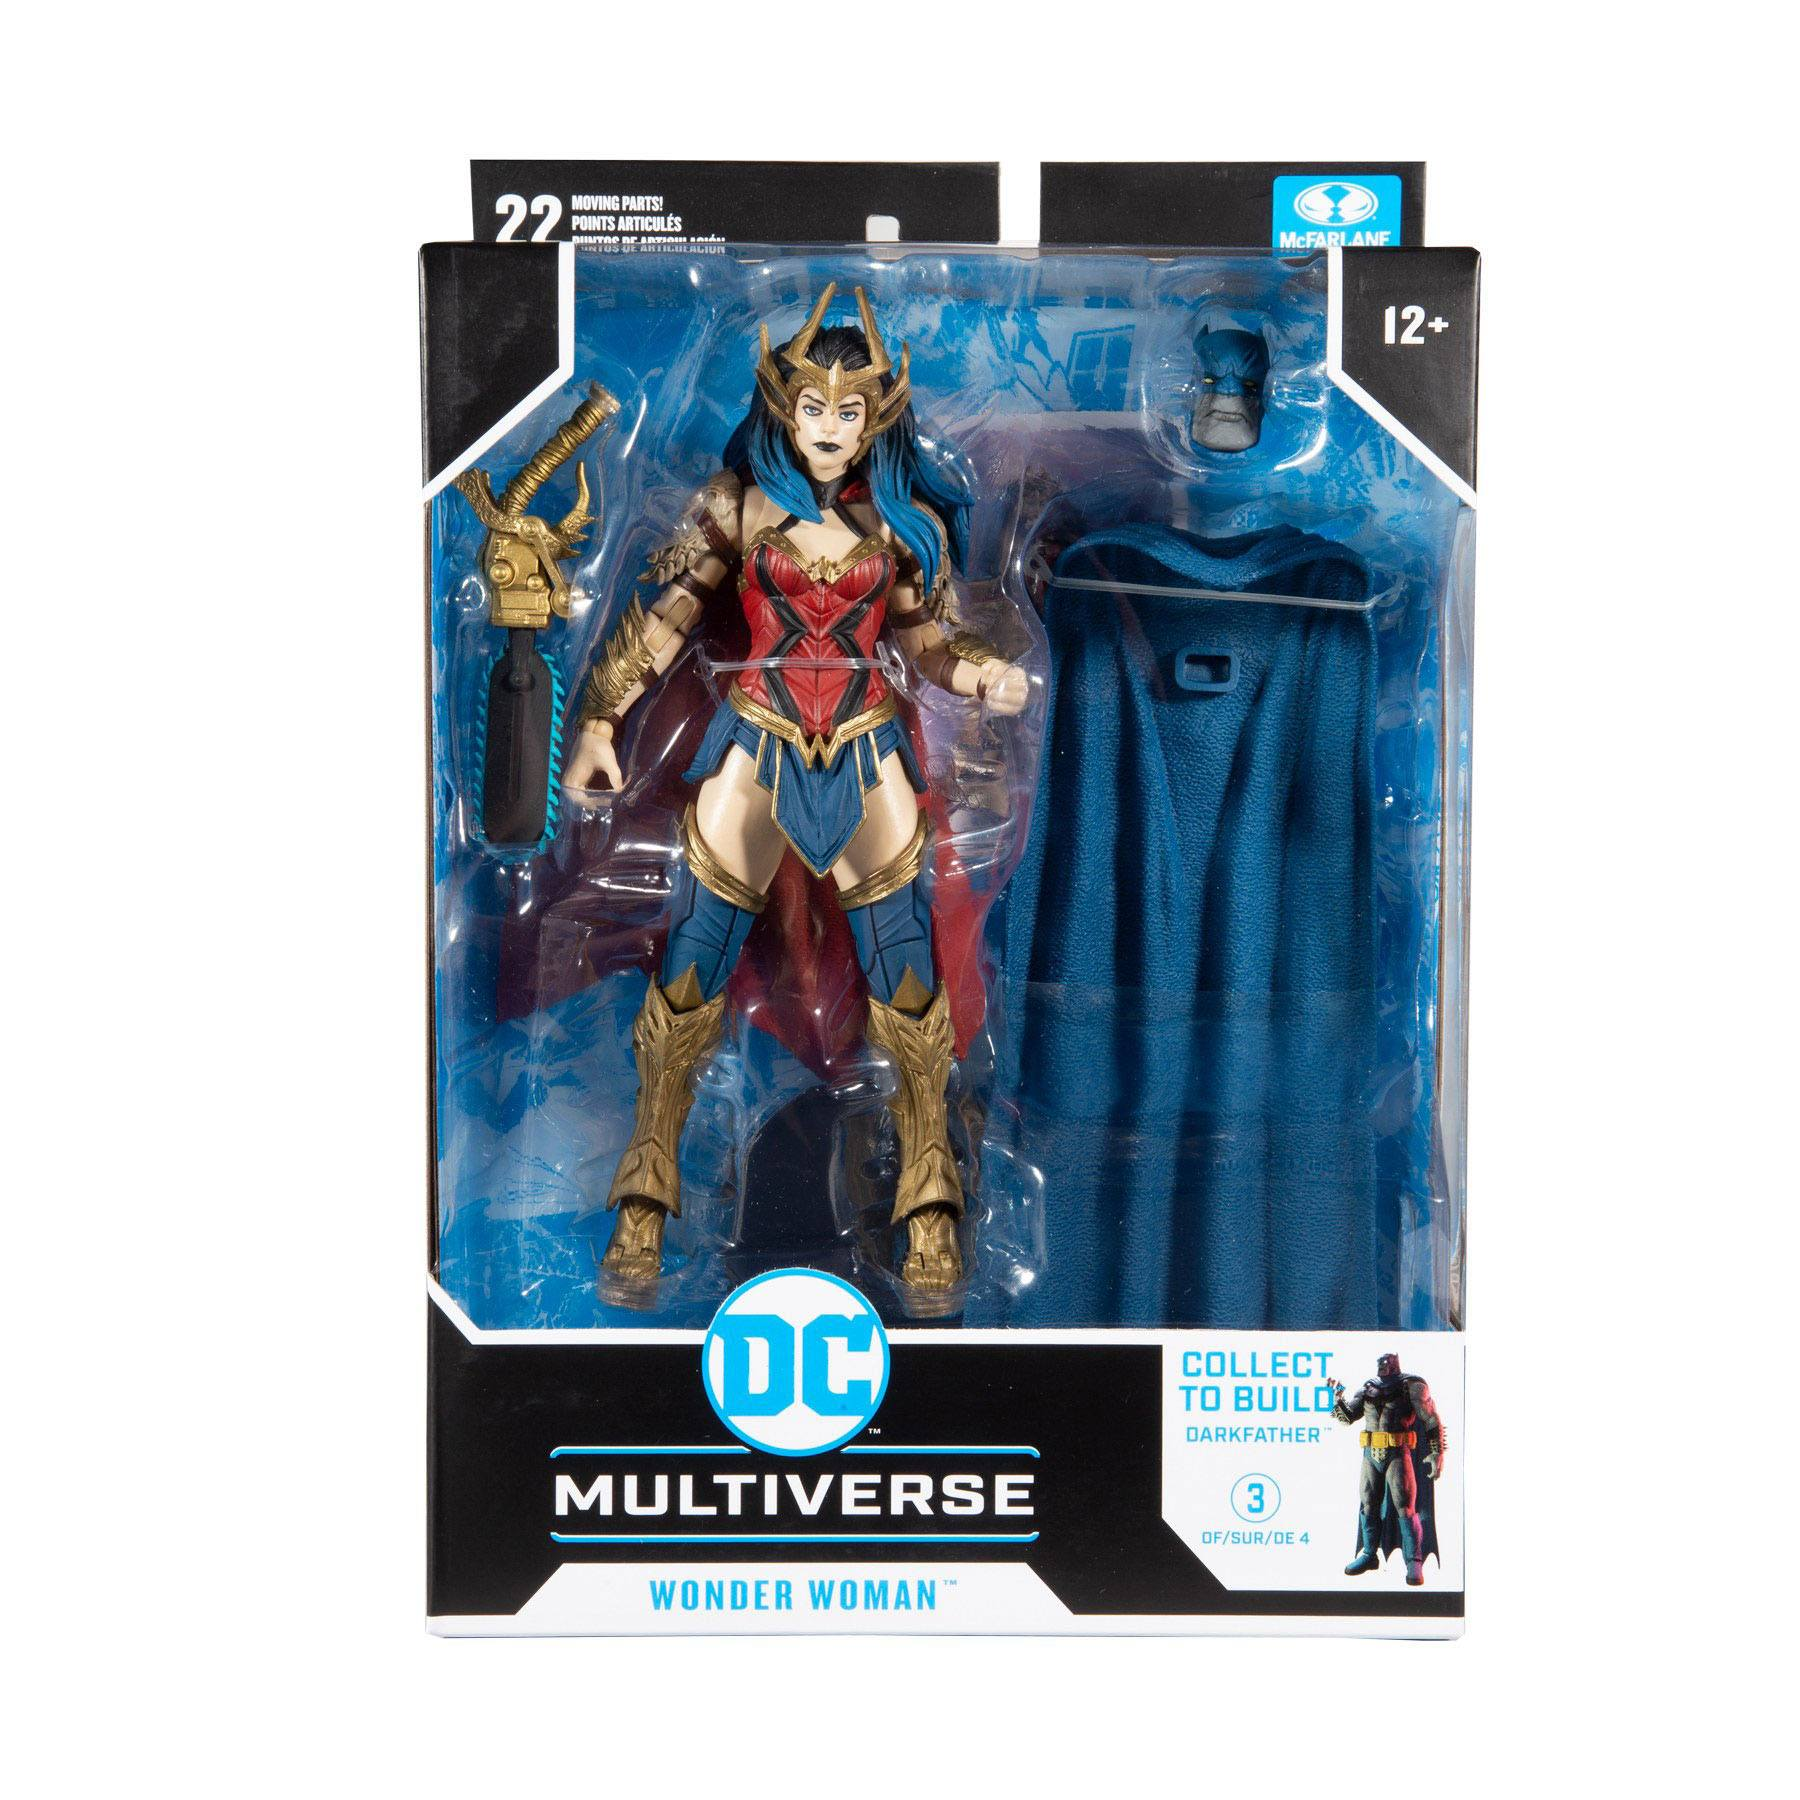 DC Multiverse Build A Actionfigur Wonder Woman 18 cm MCF15418-4 787926154184